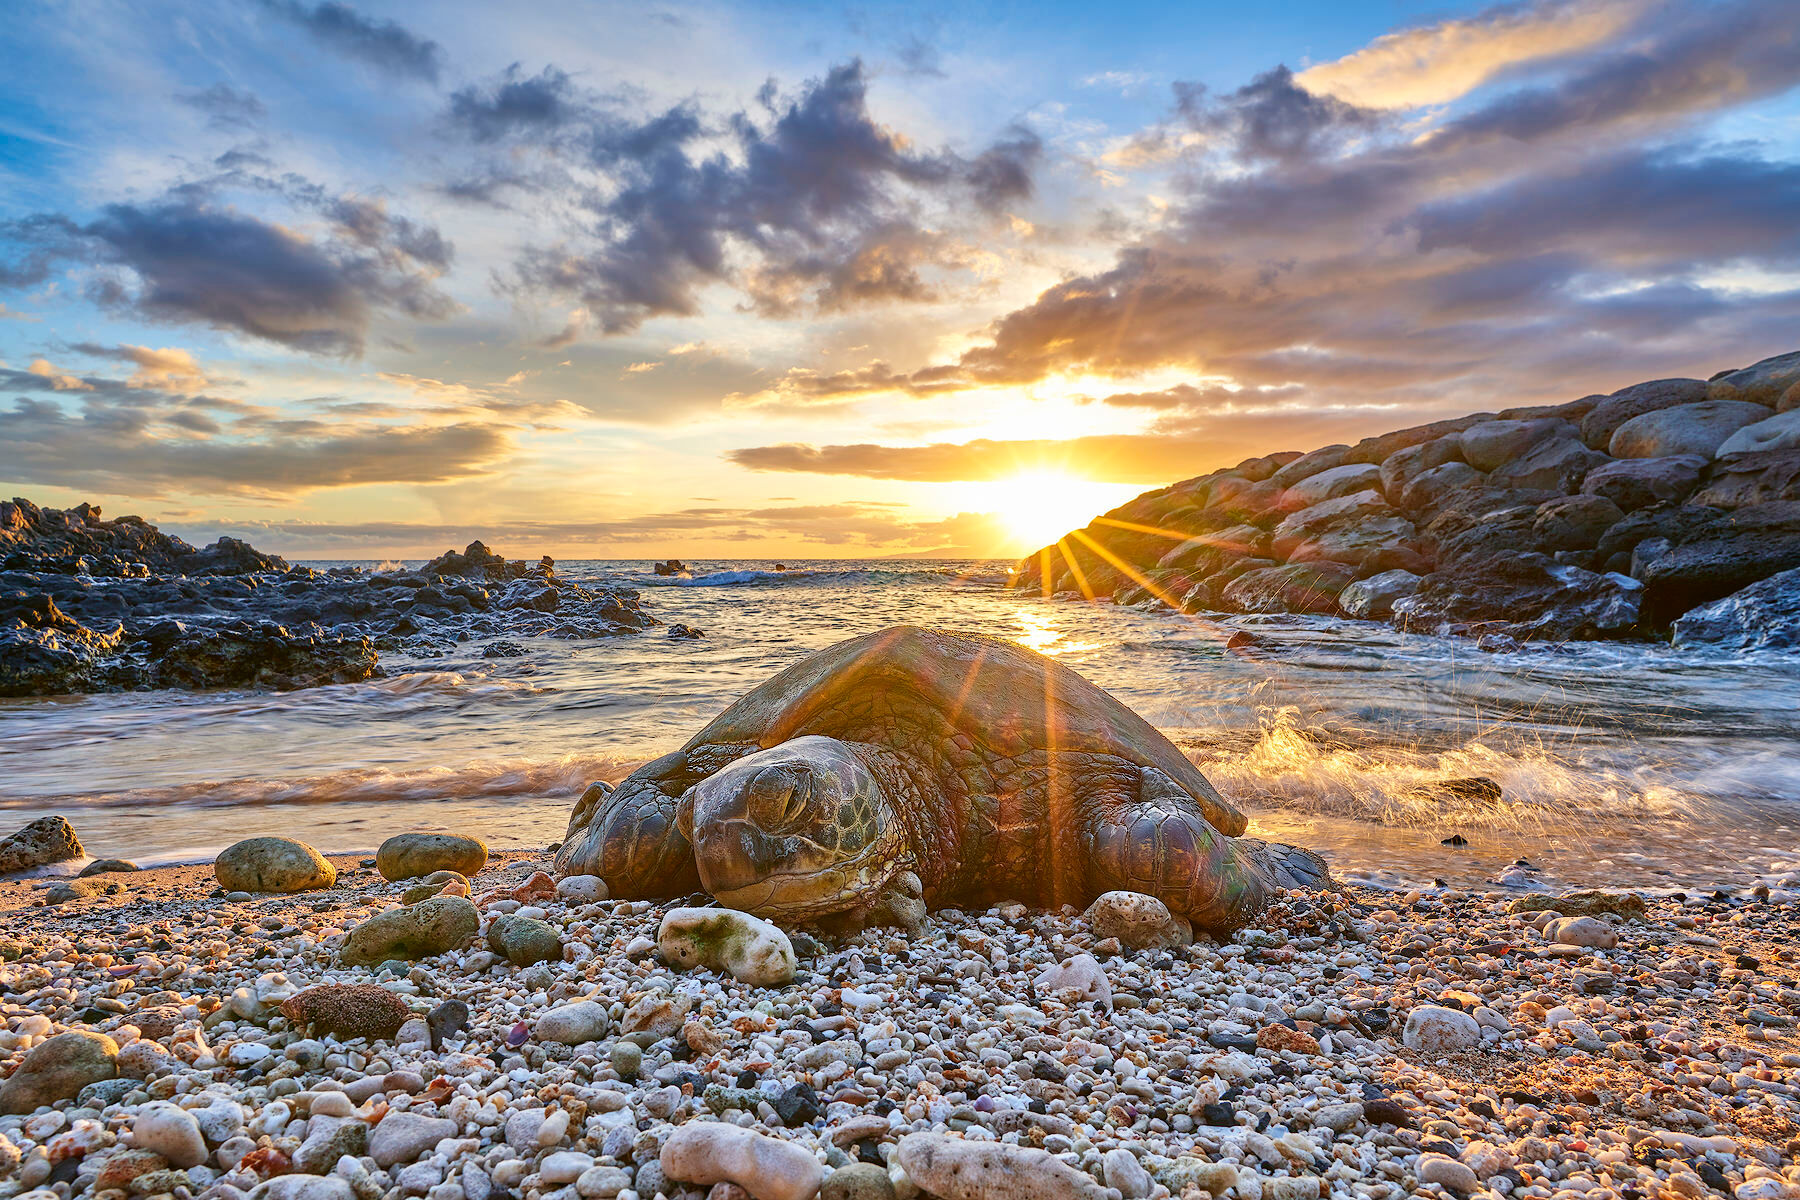 turtle, turtles, honu, honus, sunset, kihei, photo